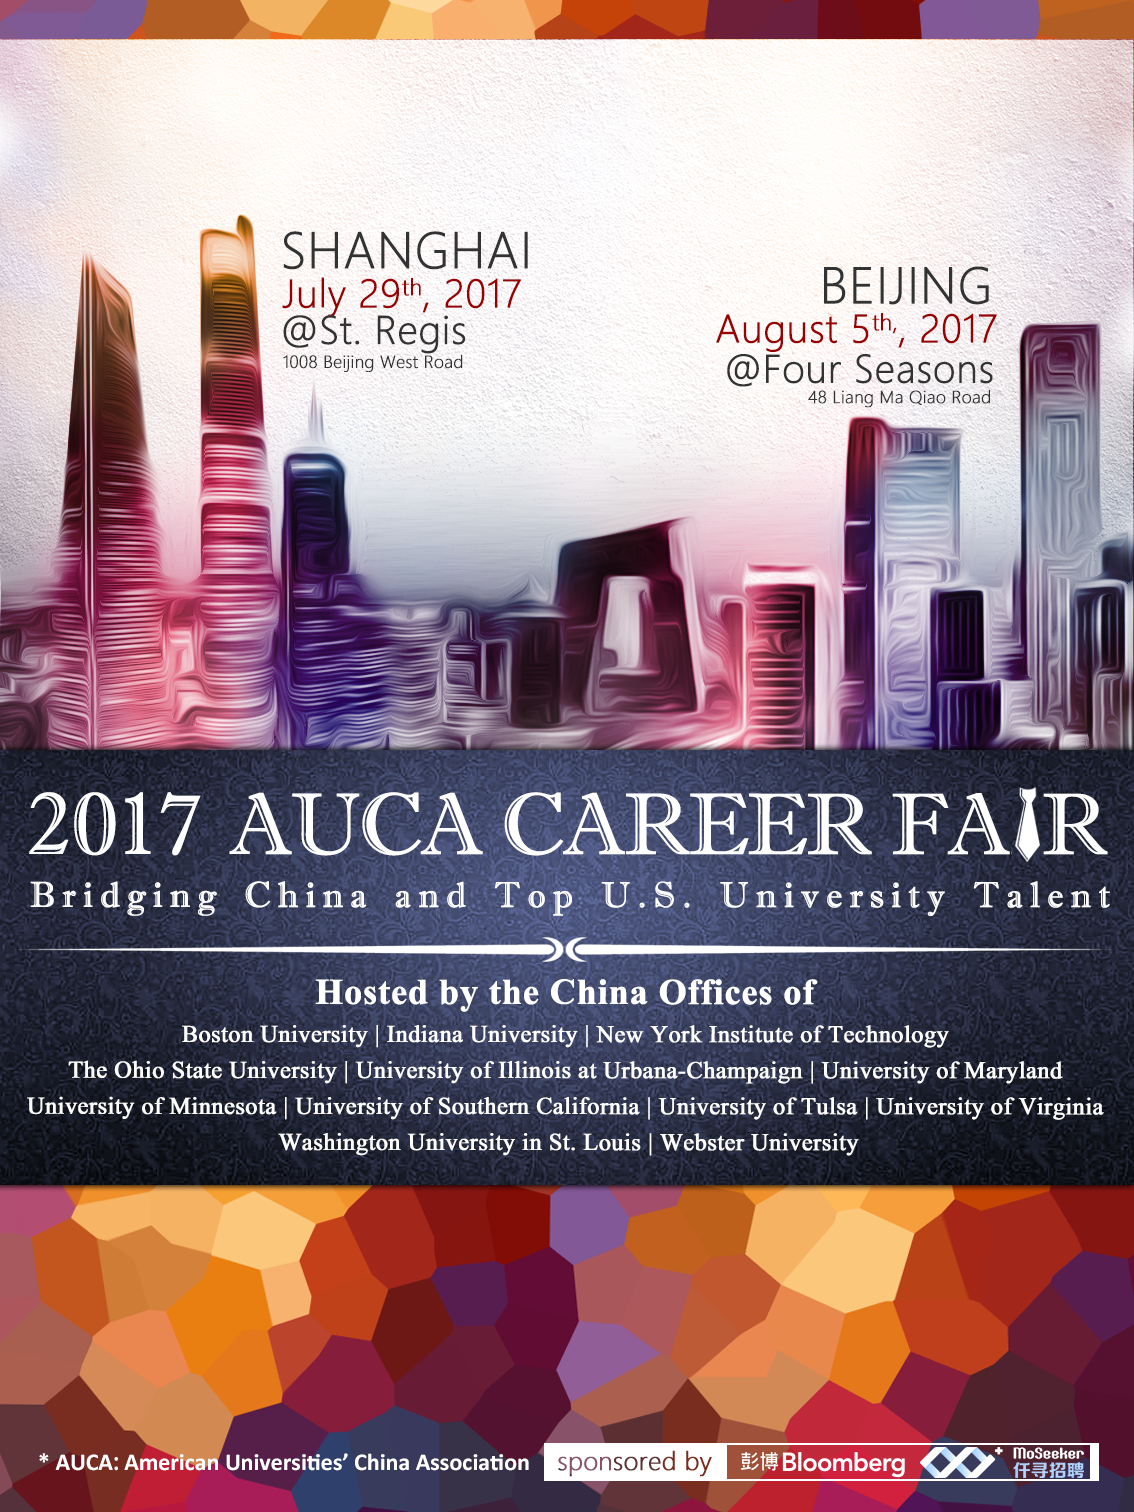 Poster for 2017 career fair with illustrated Beijing skyline.